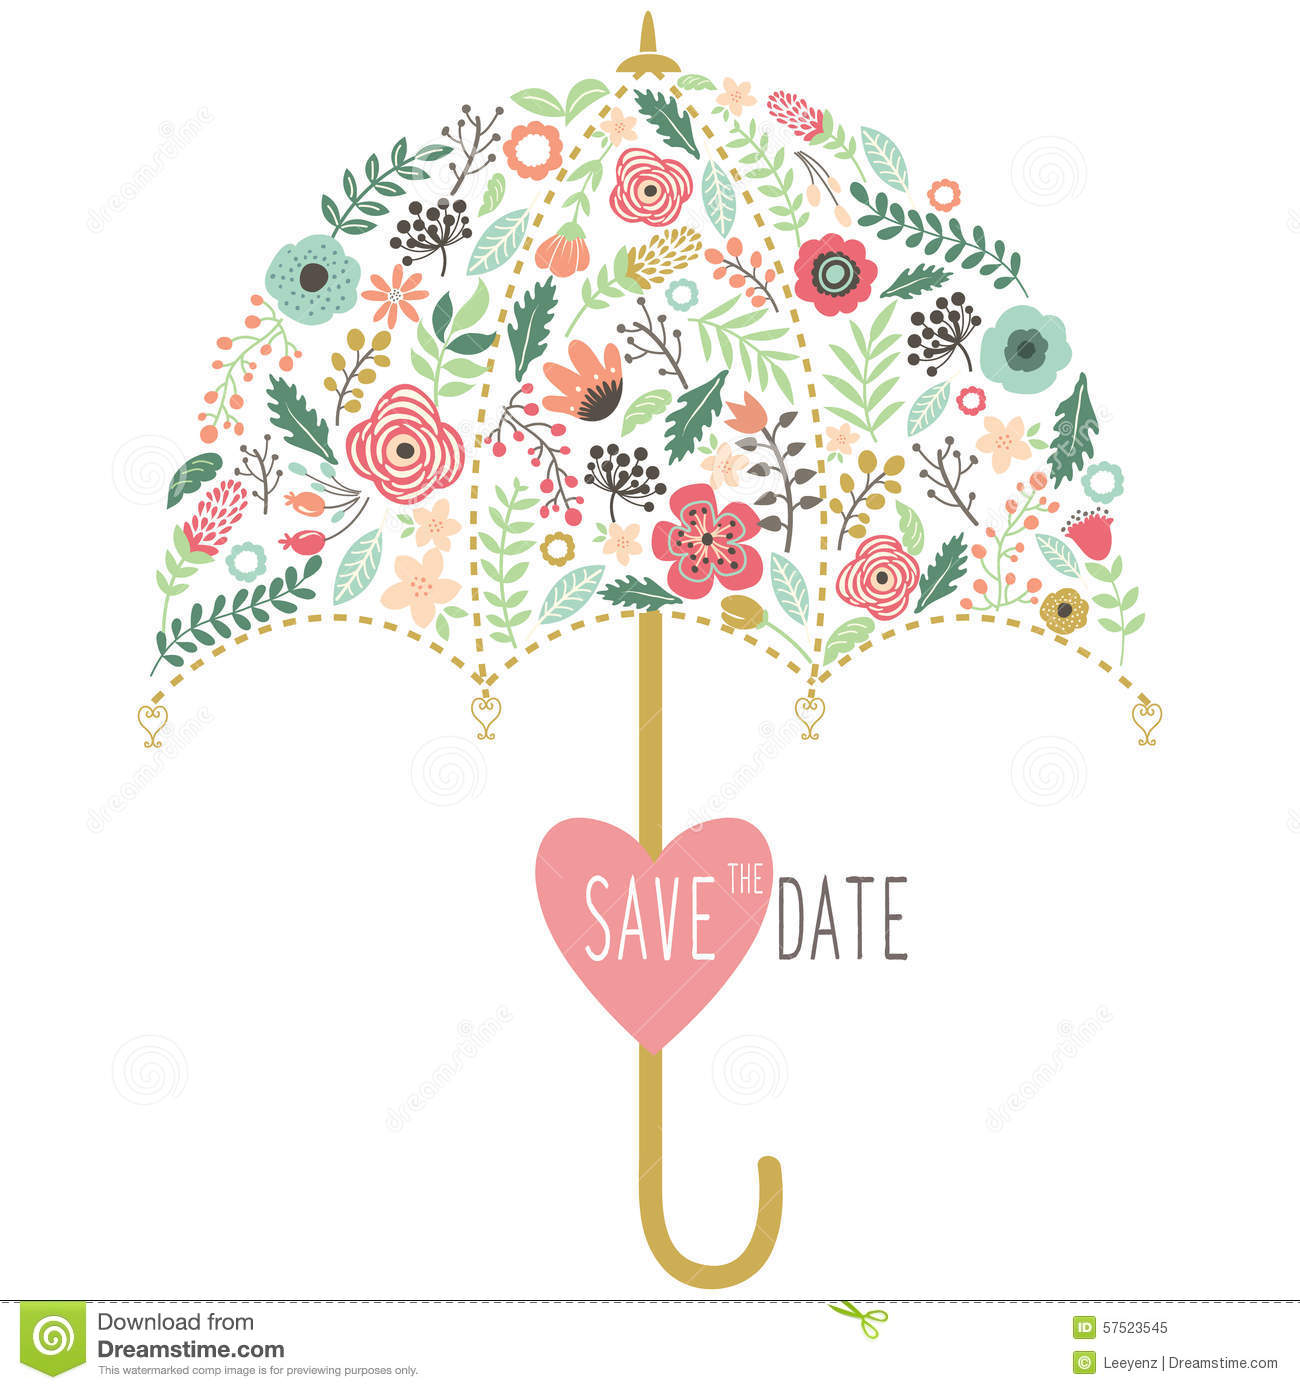 Flora Wedding Umbrella Elements Illustration De Vecteur